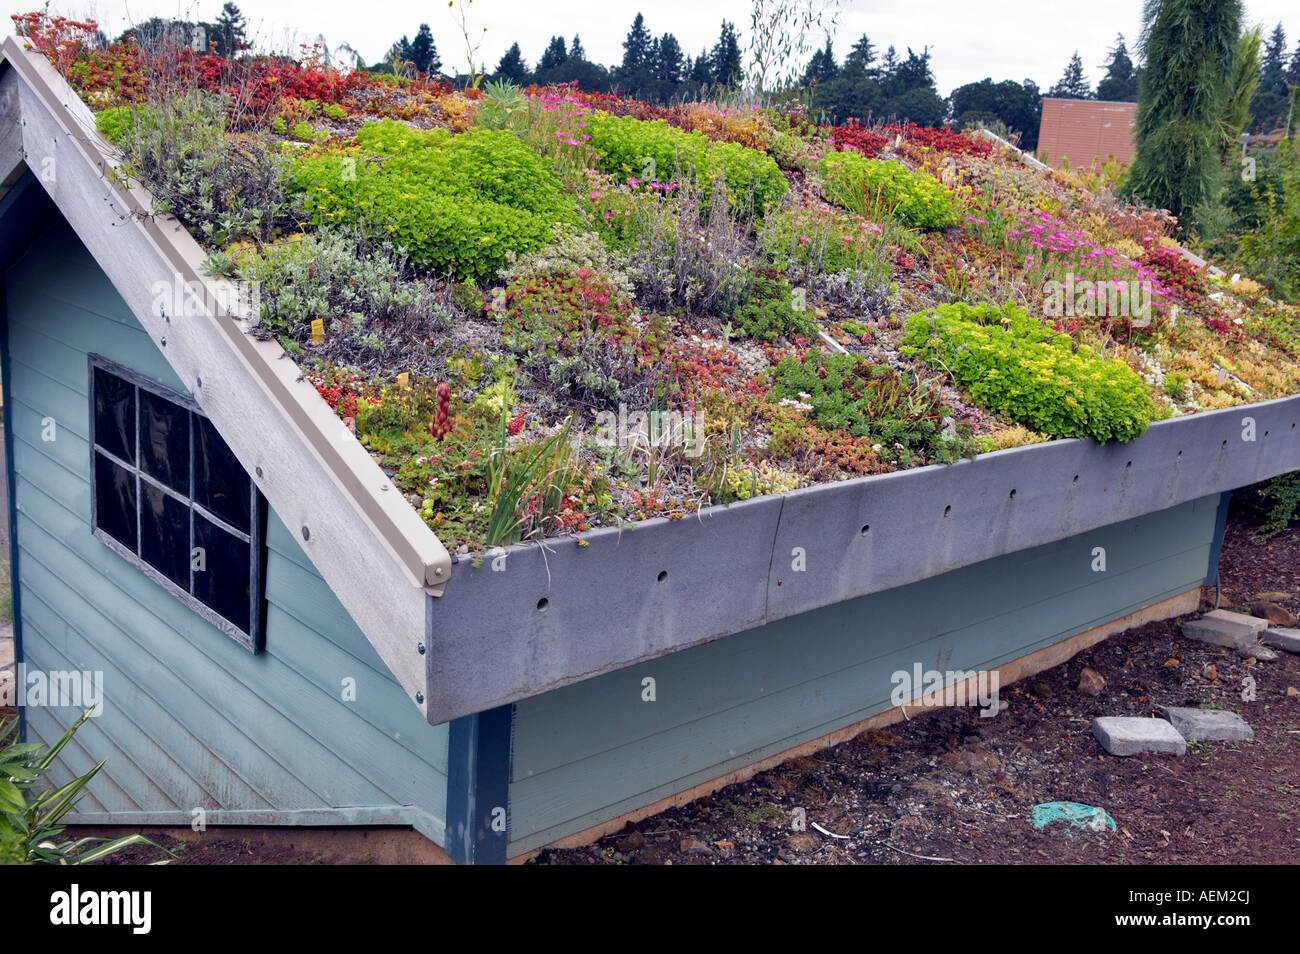 Plants for rooftop gardens - Roof Of Building Covered In Rock Succulent Plants Oregon Garden Oregon